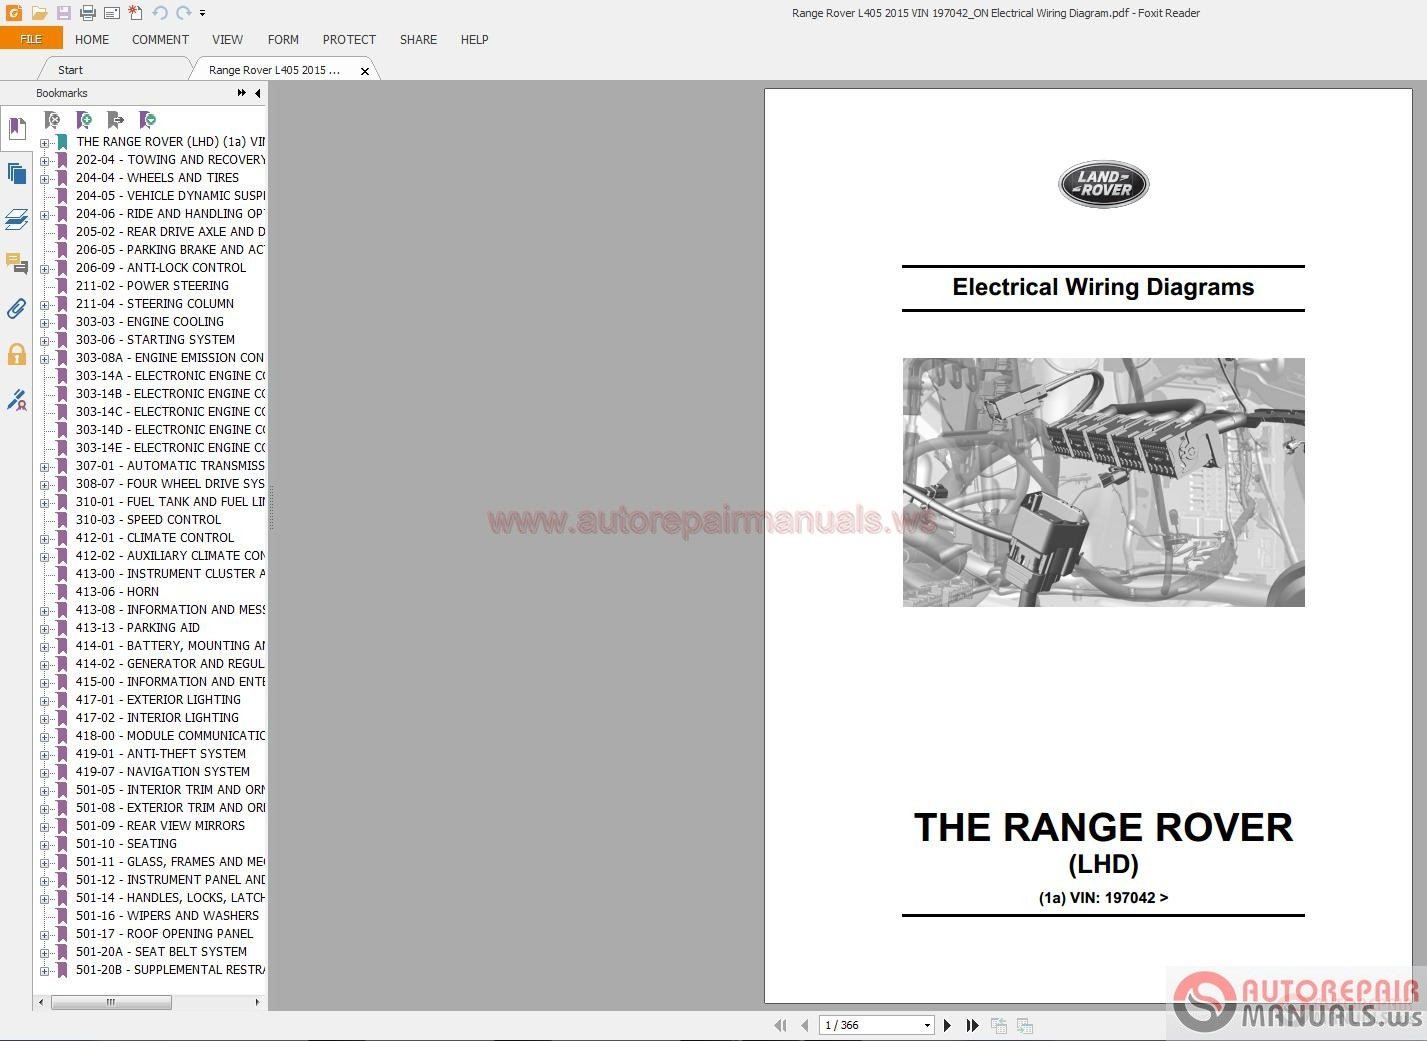 hight resolution of range rover l405 2015 vin 197042 on electrical wiring diagram auto 2000 range rover hse wiring diagram range rover hse wiring diagram